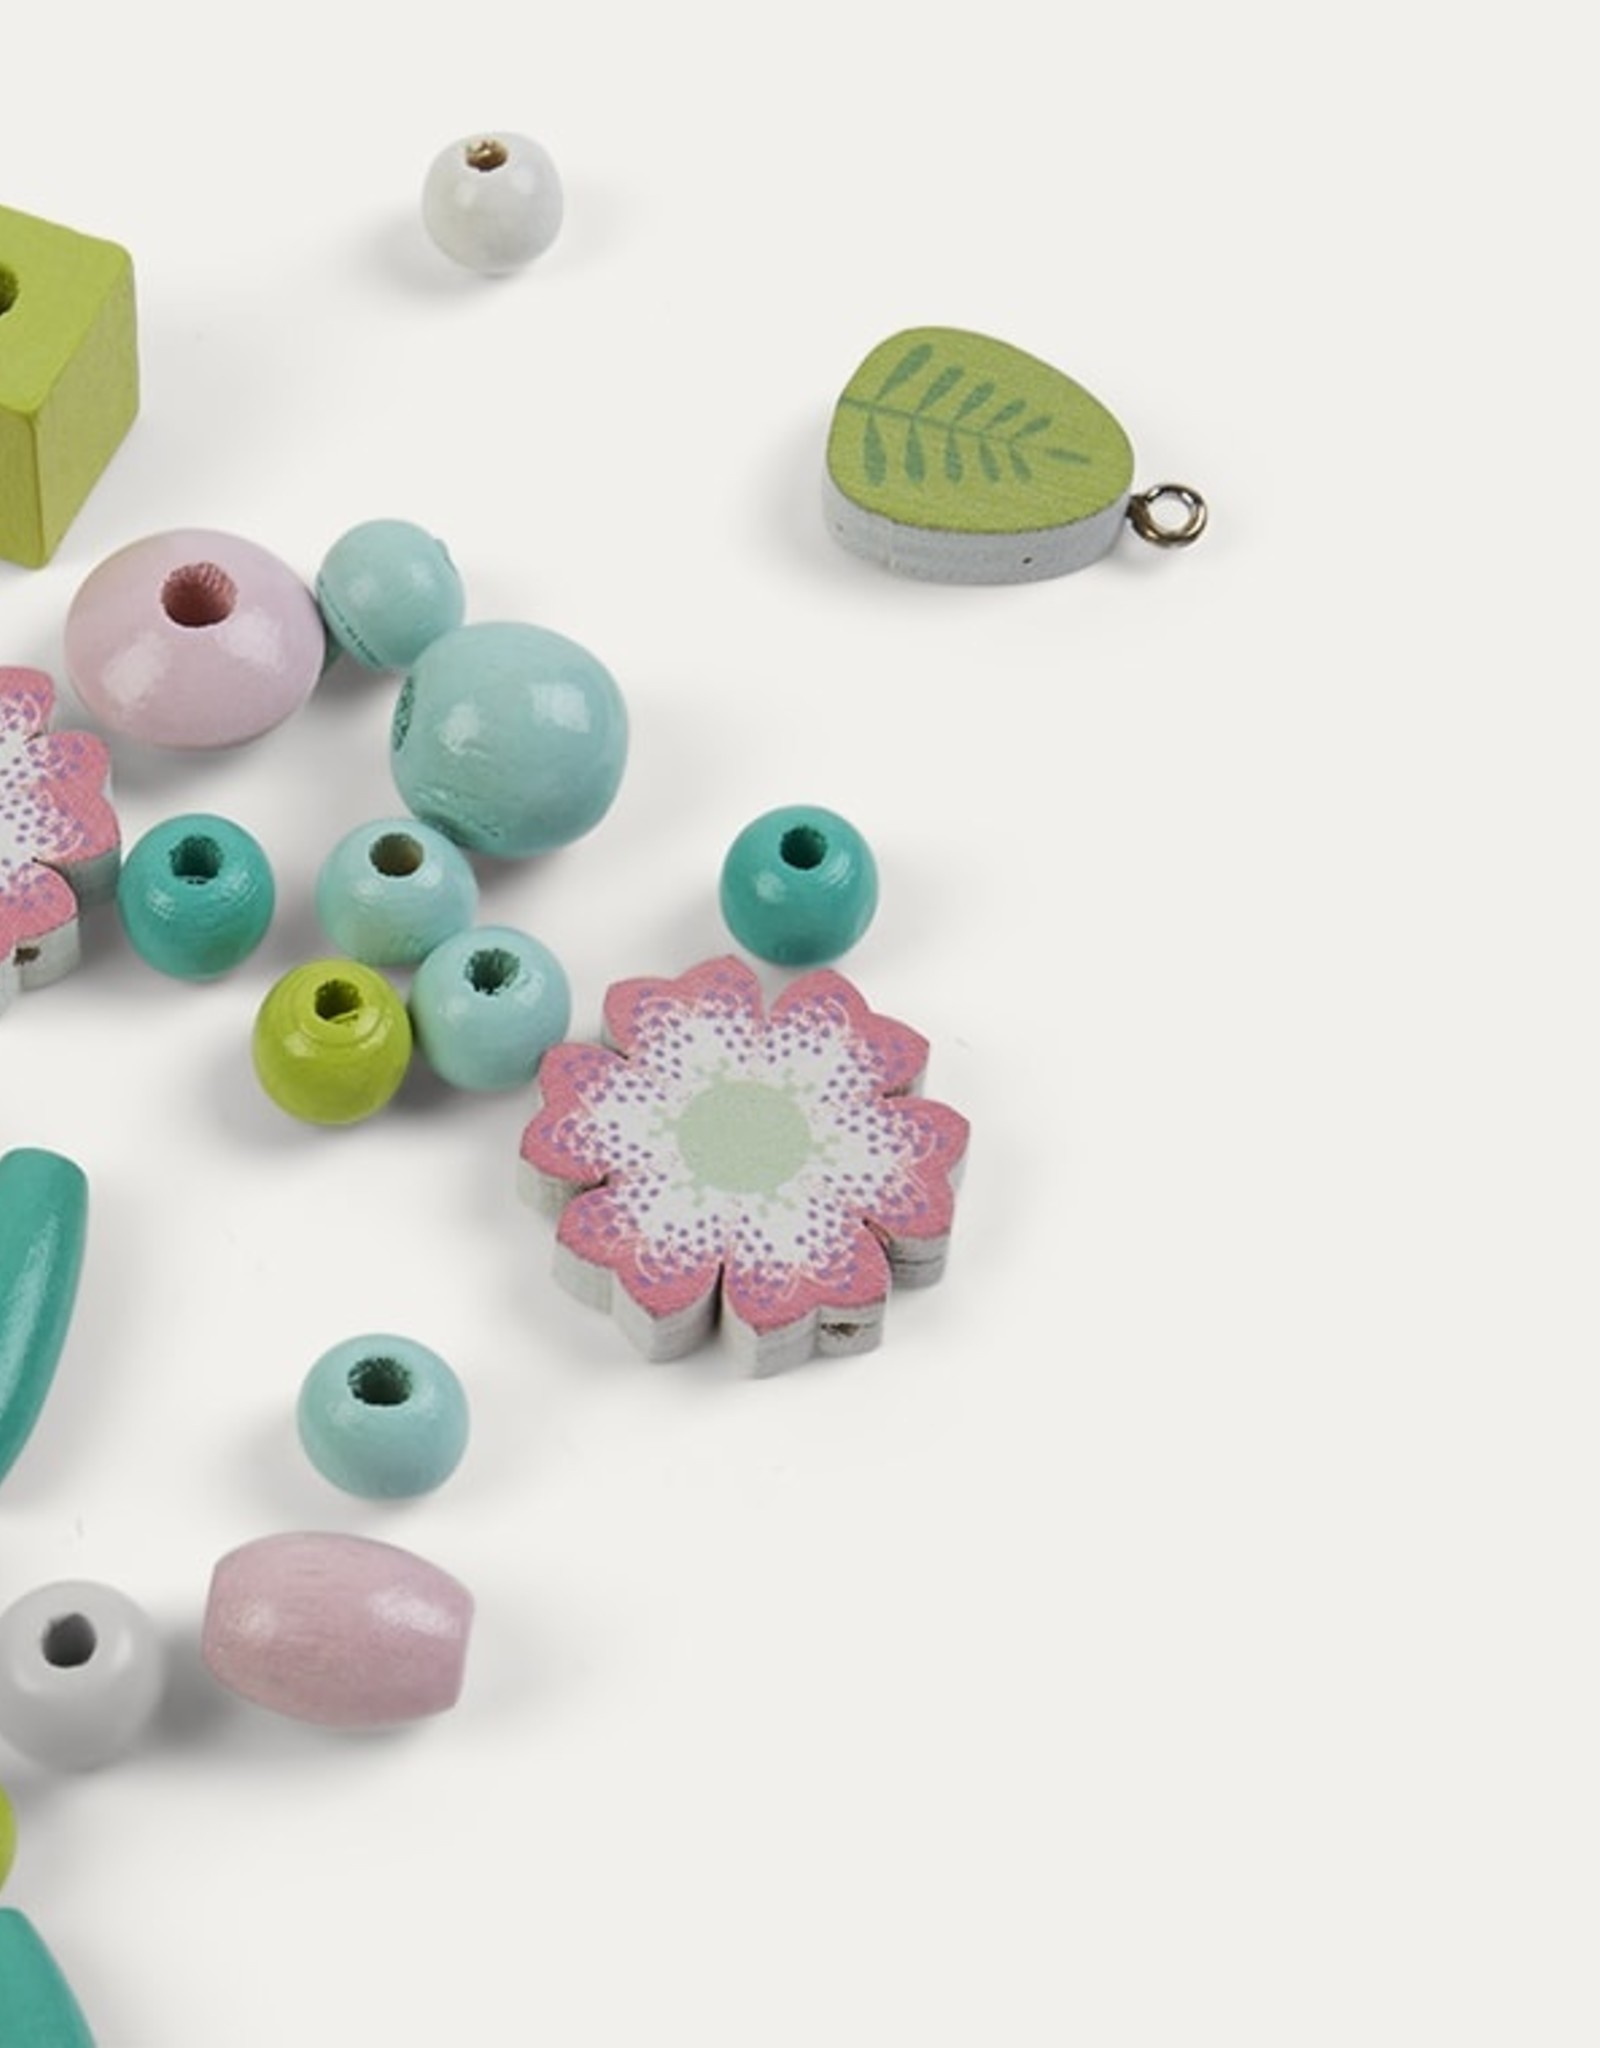 Djeco Wooden Beads - Flowers and Foliage